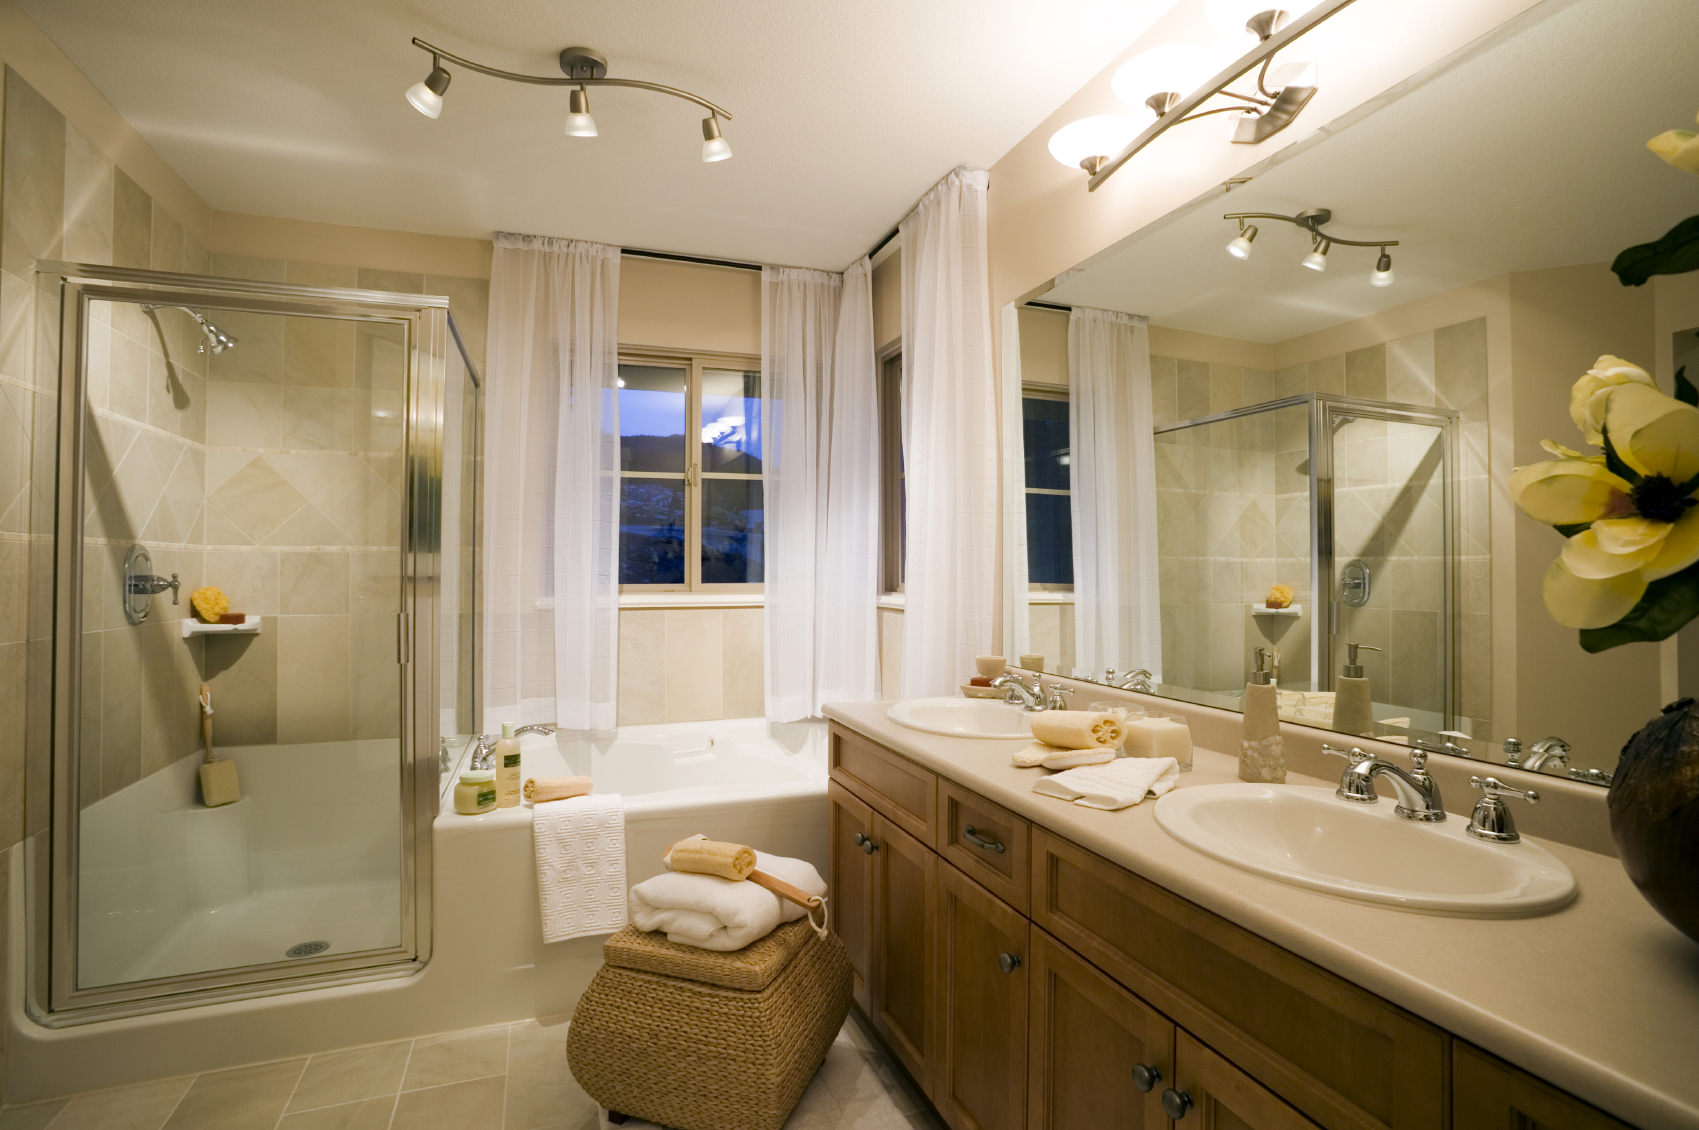 Small bathroom window treatments 6711 Bathroom remodel design